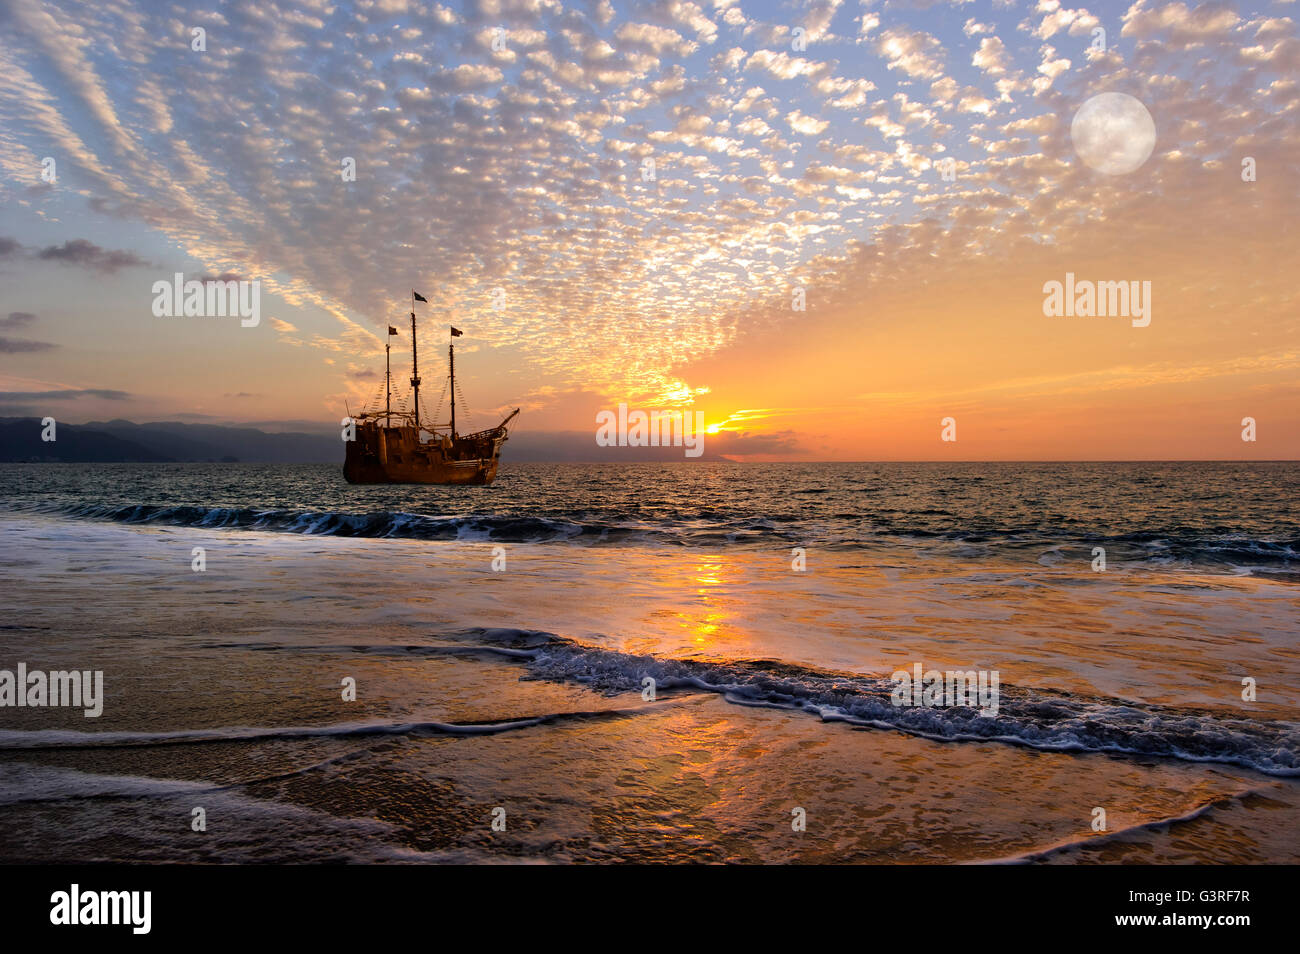 Pirate ship fantasy is an old wooden pirate ship with full flags as the sun sets on the ocean and the moon rises Stock Photo